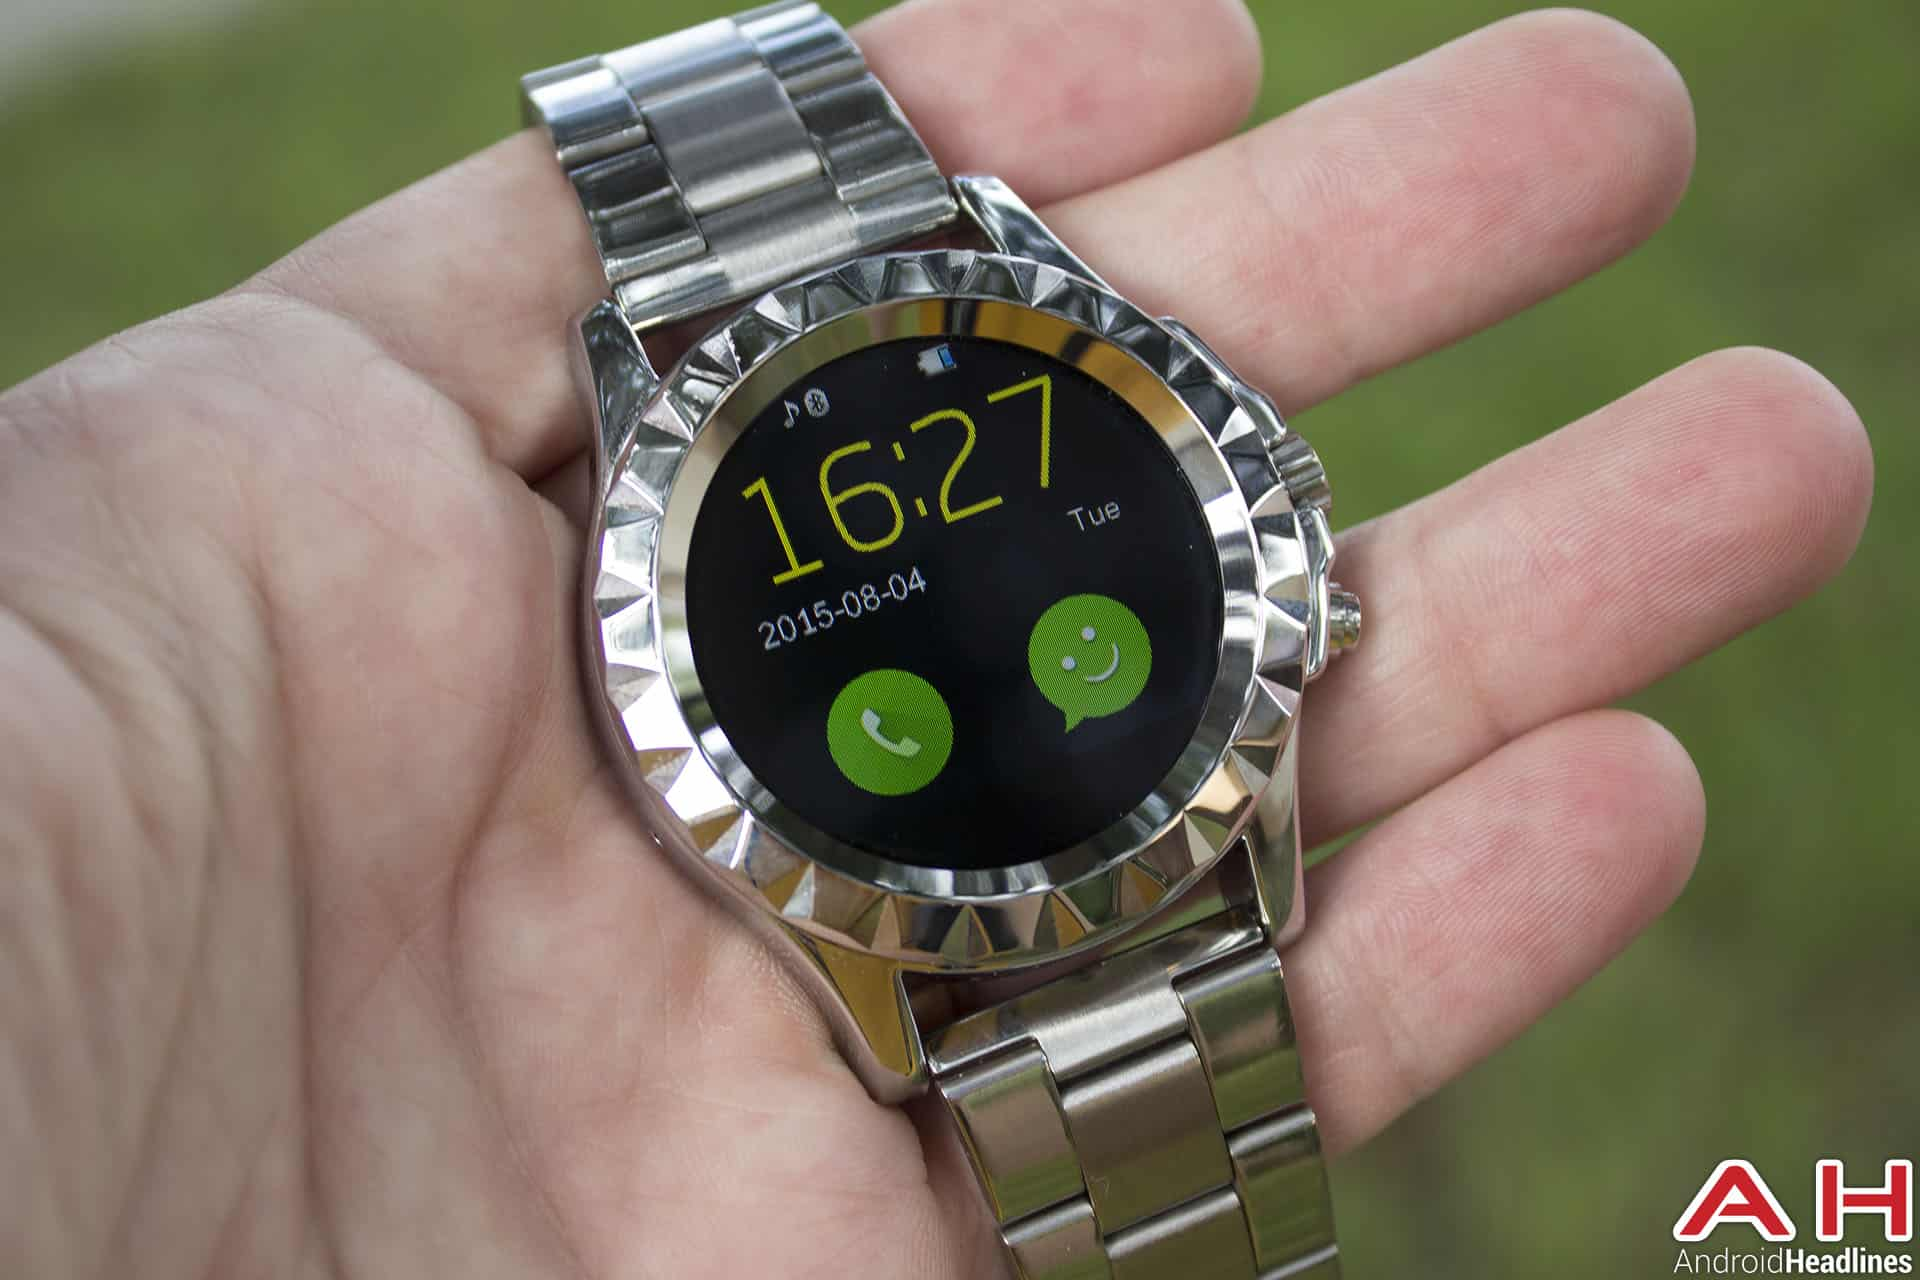 No 1 Sun S2 Smartwatch face 4